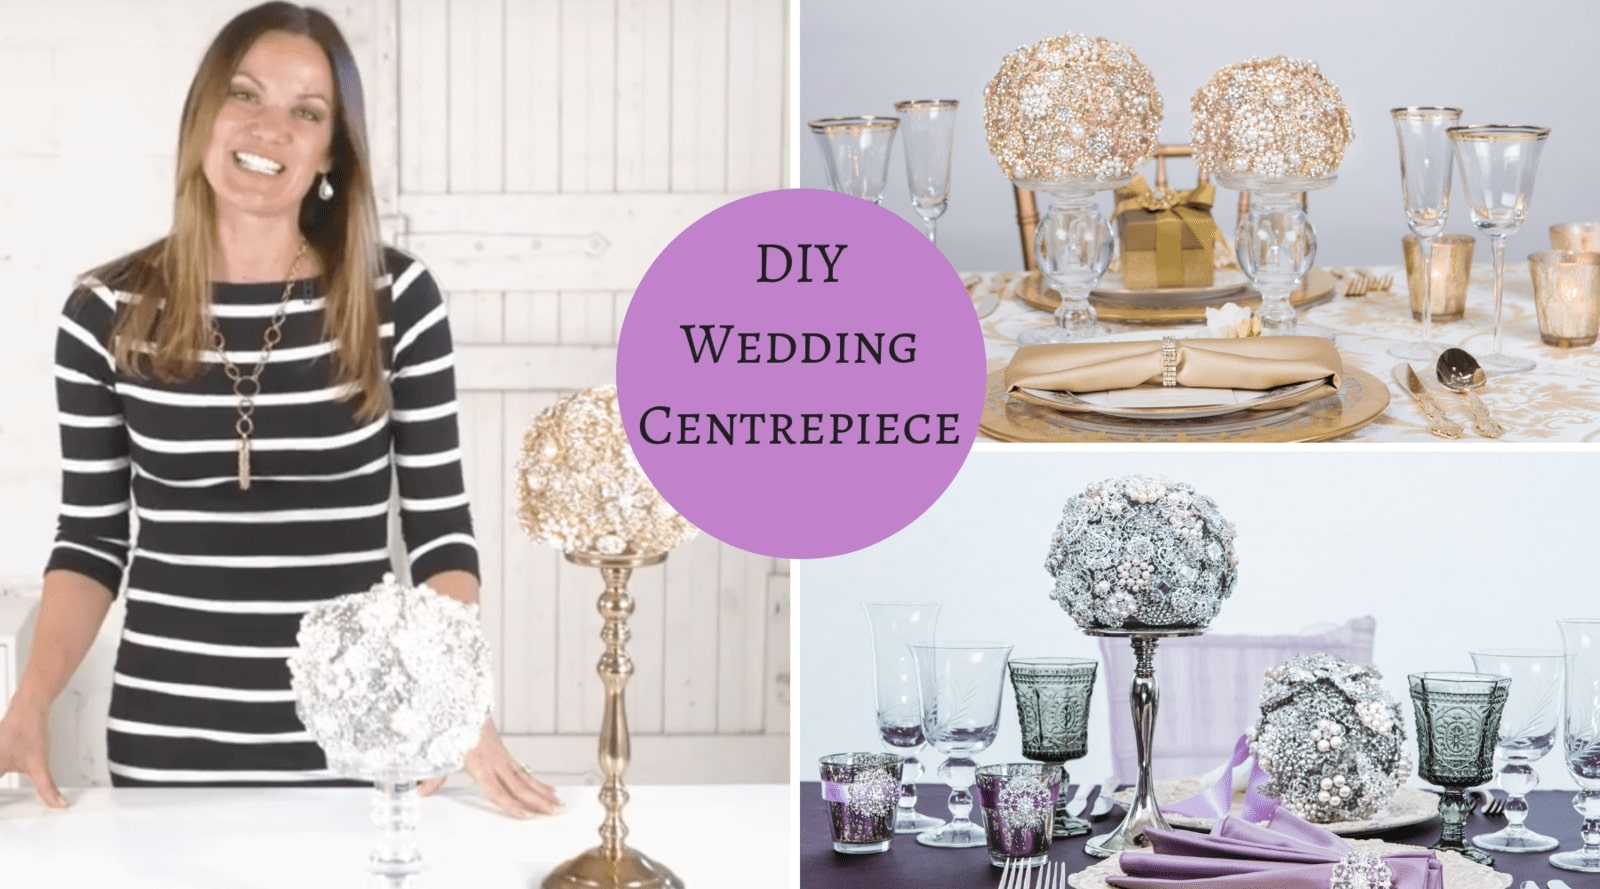 Wedding DIY Centerpiece - Brooch Ball Centerpiece